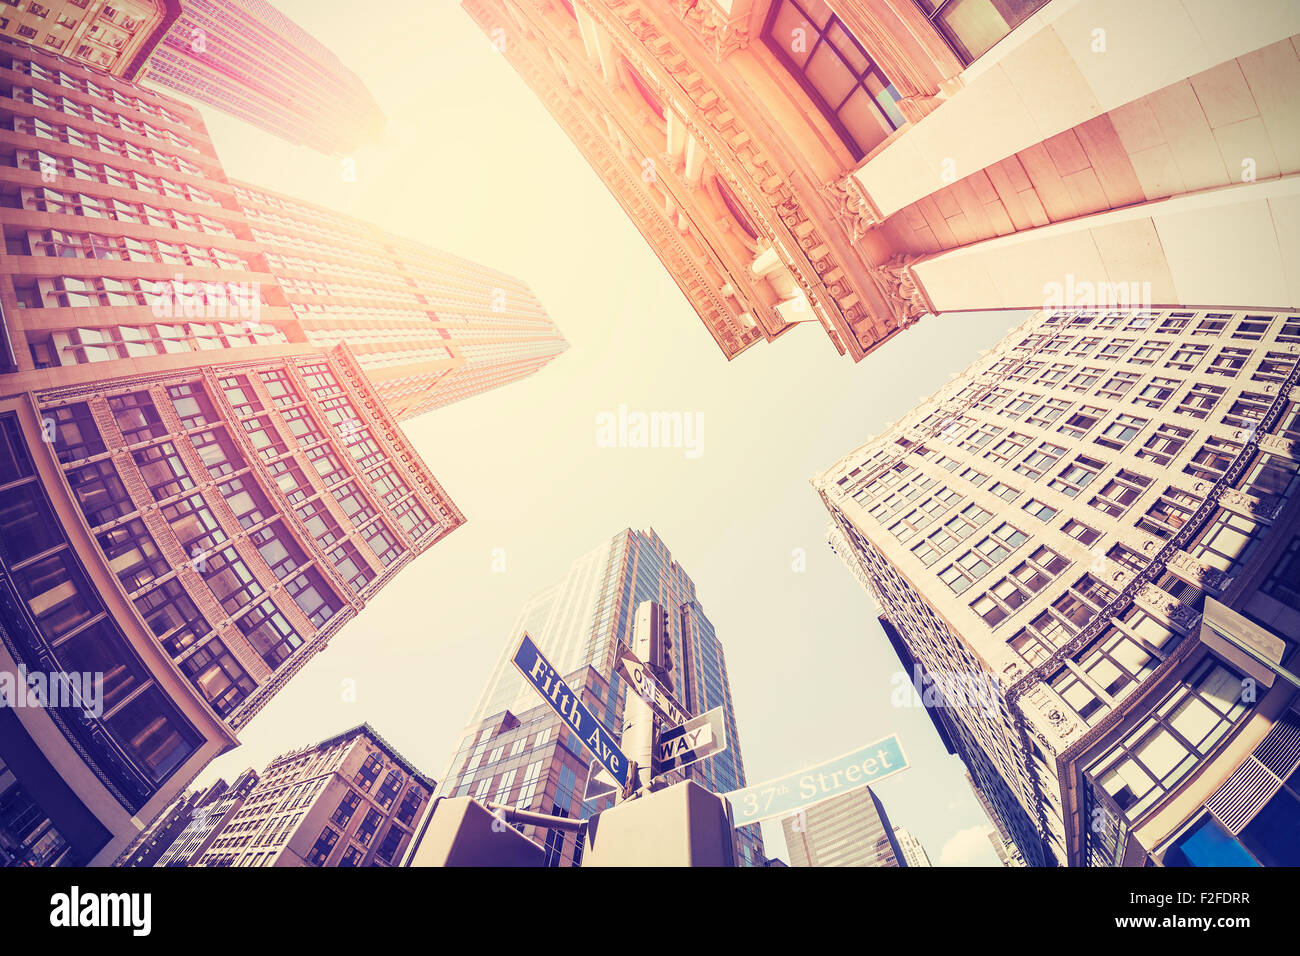 Vintage filtered fisheye picture of Manhattan, looking up at sky, New York City, USA. - Stock Image